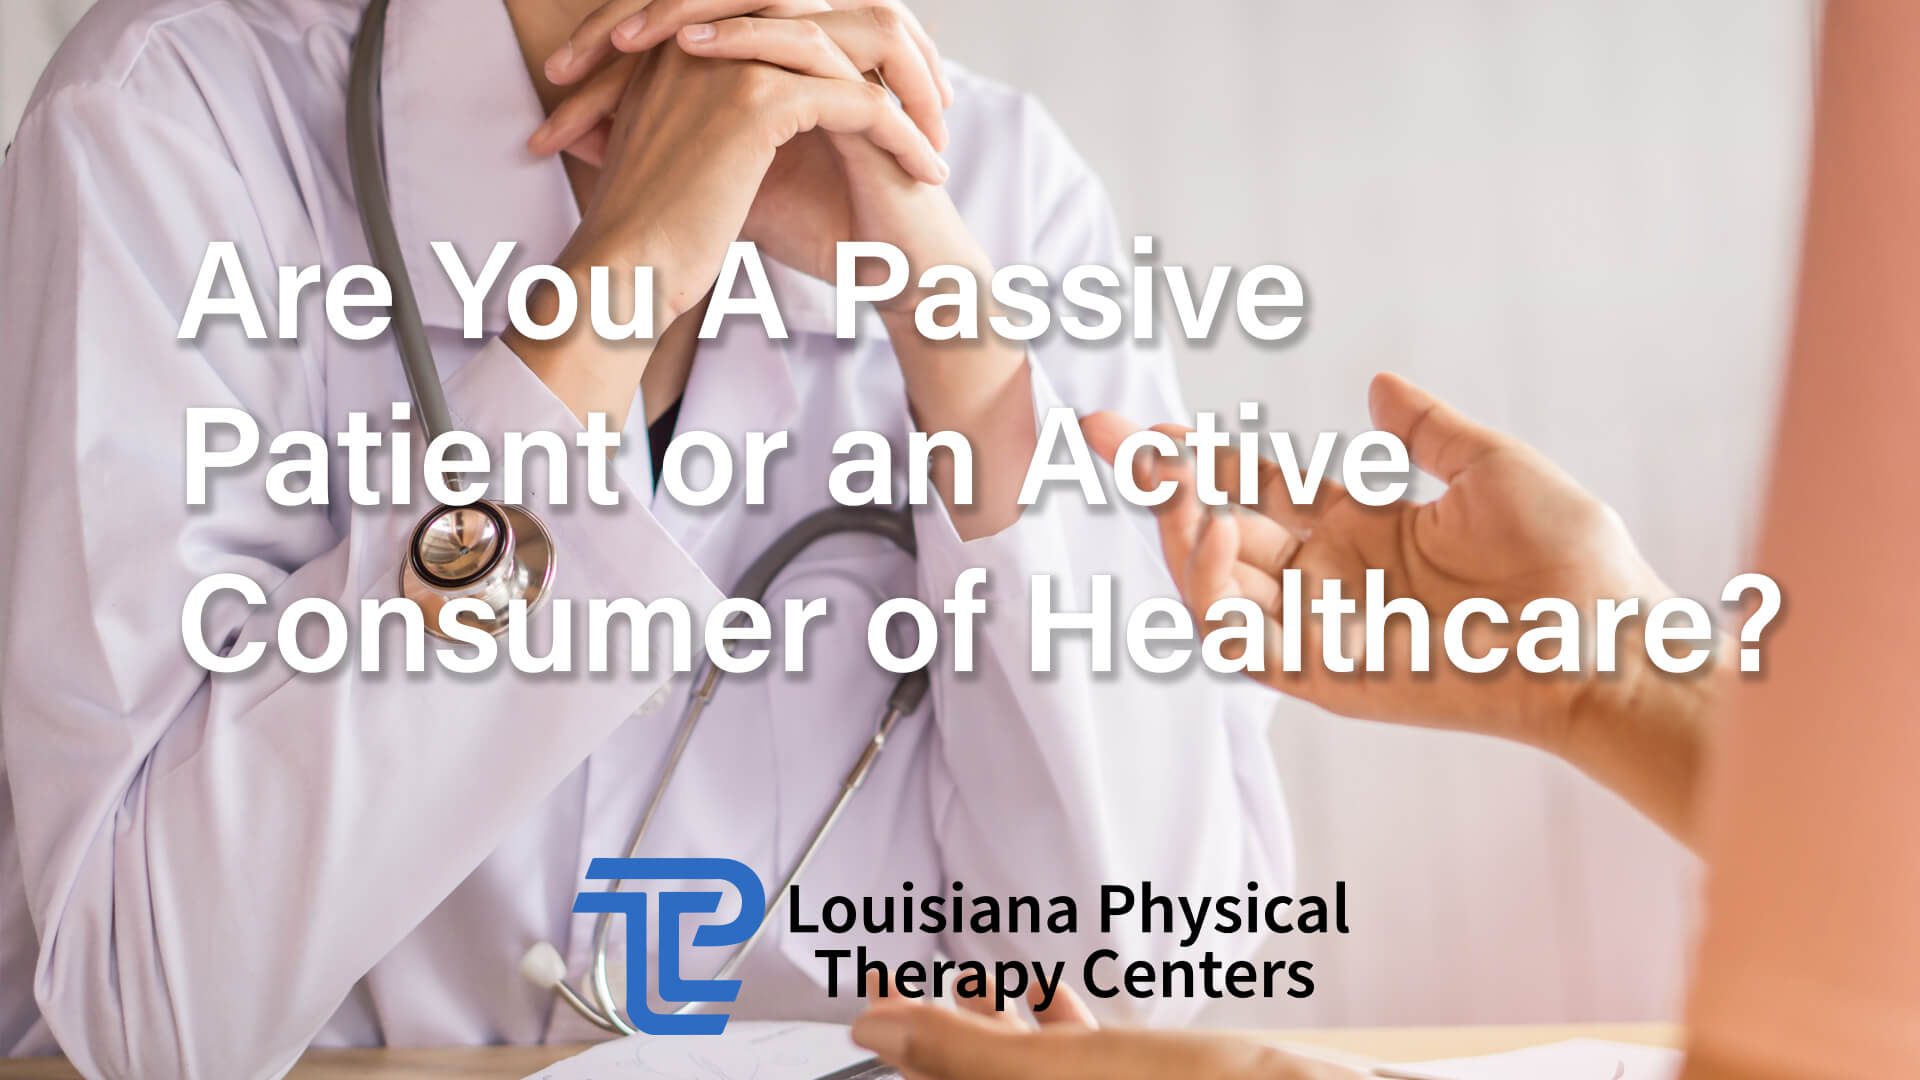 Are You A Passive Patient or an Active Consumer of Healthcare?